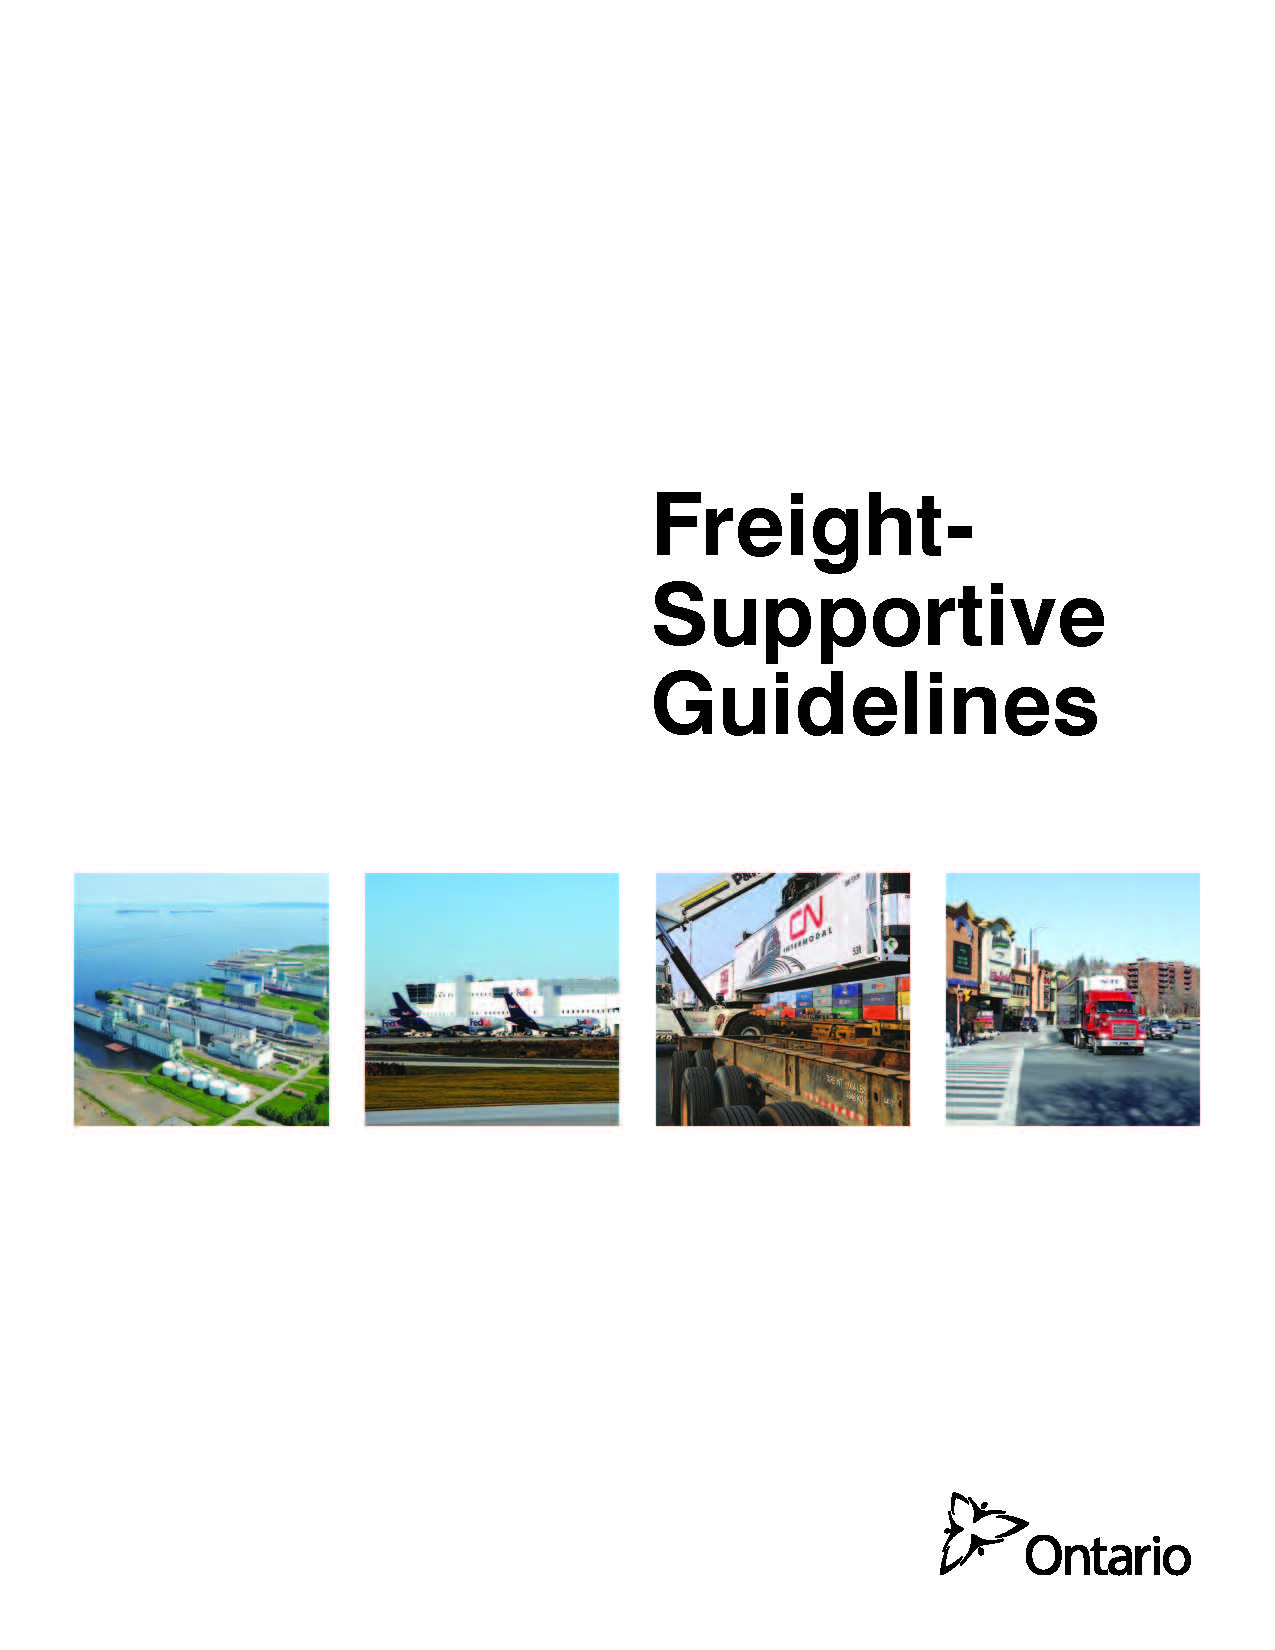 Freight-Supportive Guidelines cover